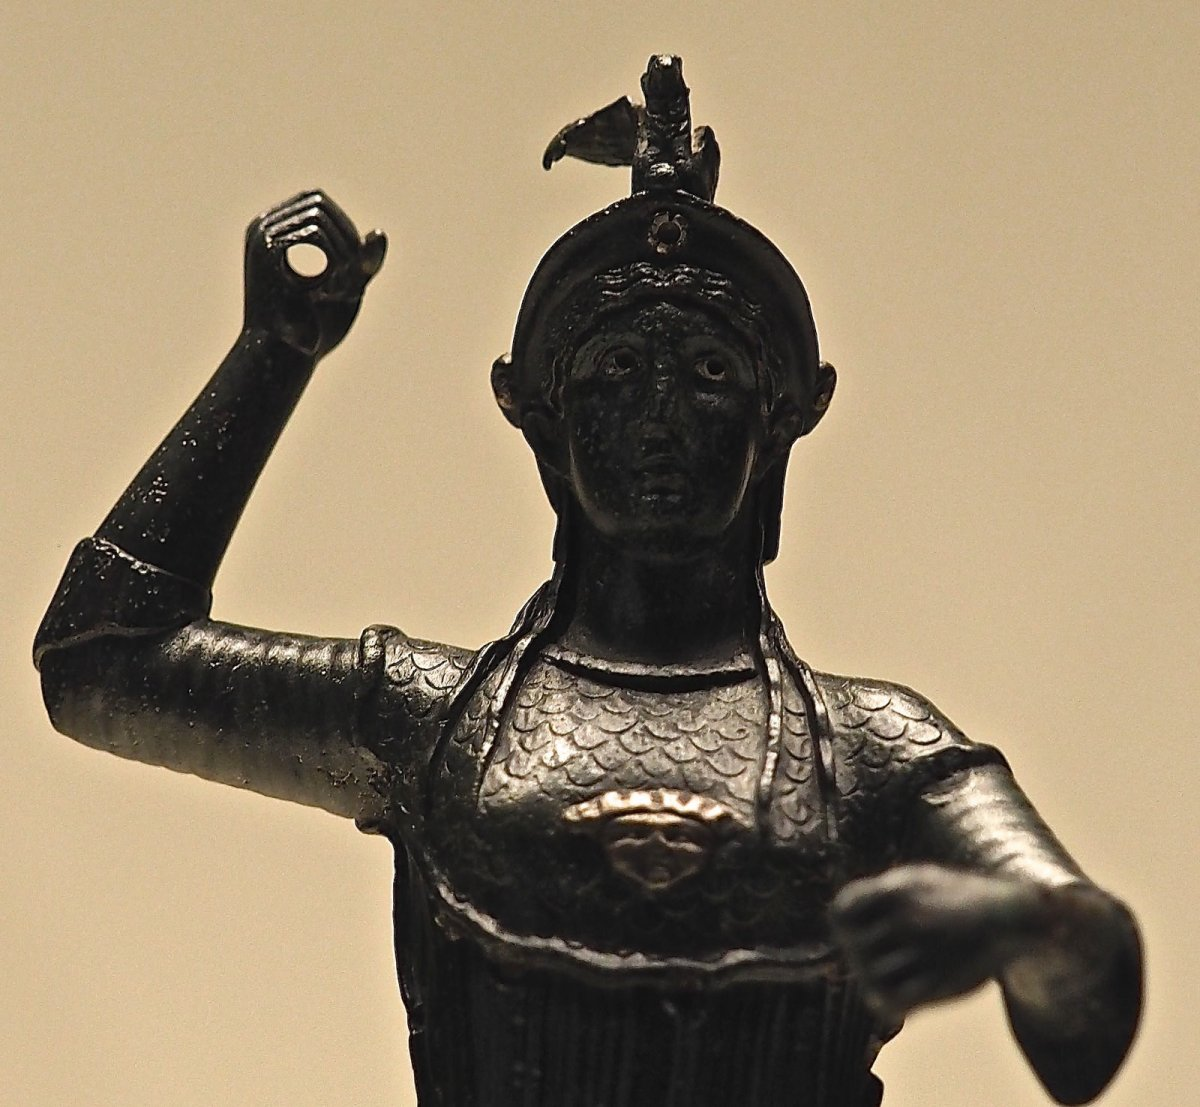 Black Athena Controversy: Battle of Historians